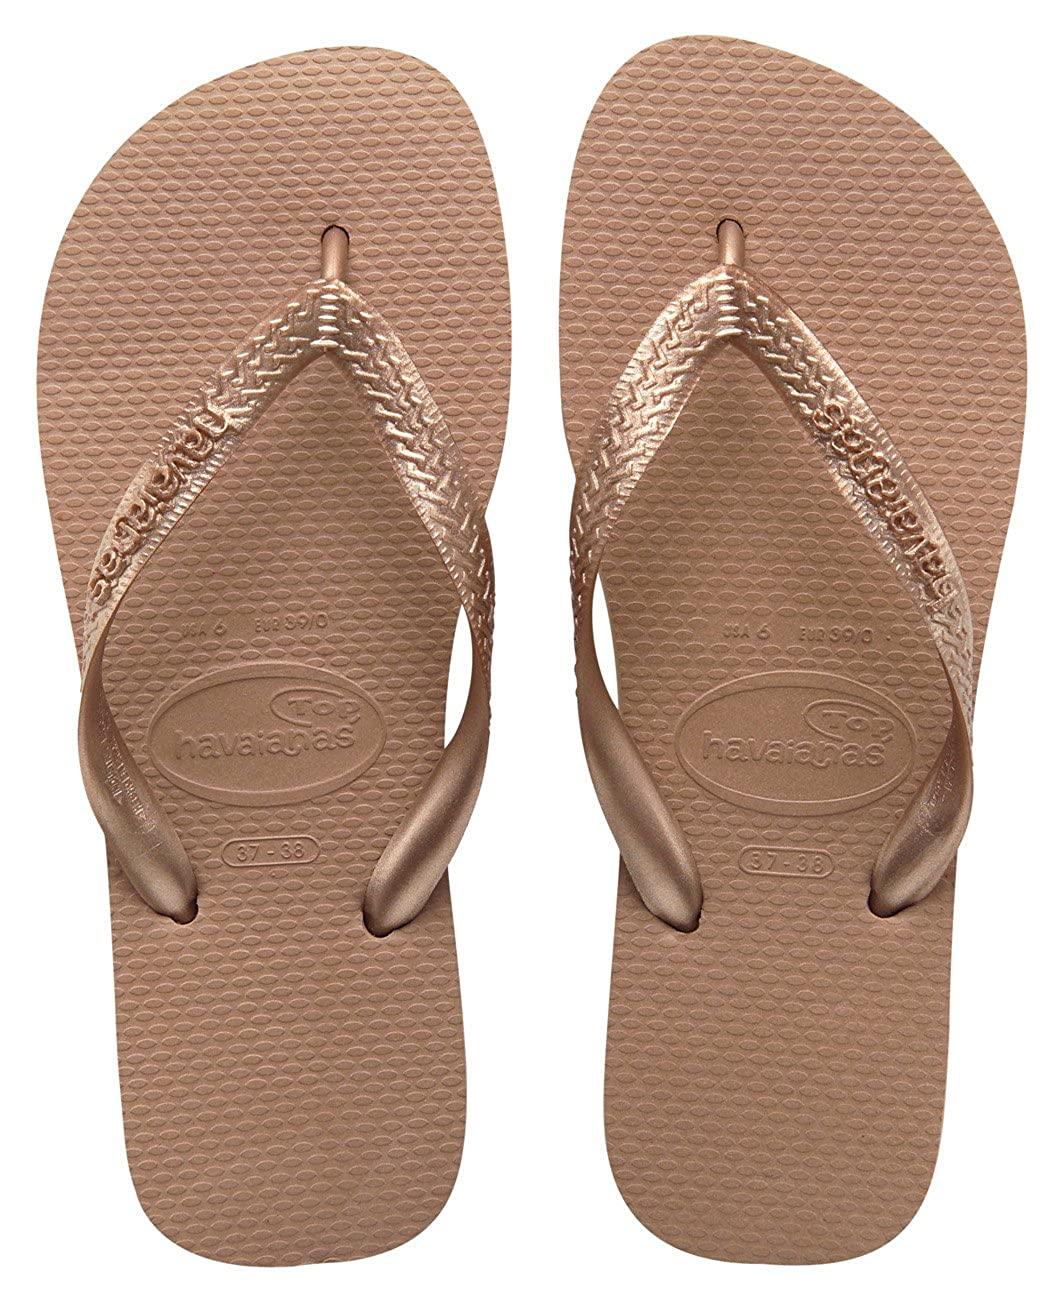 6584f6732723 Authentic Havaianas Flip Flop Thong Sandal Top Metallic